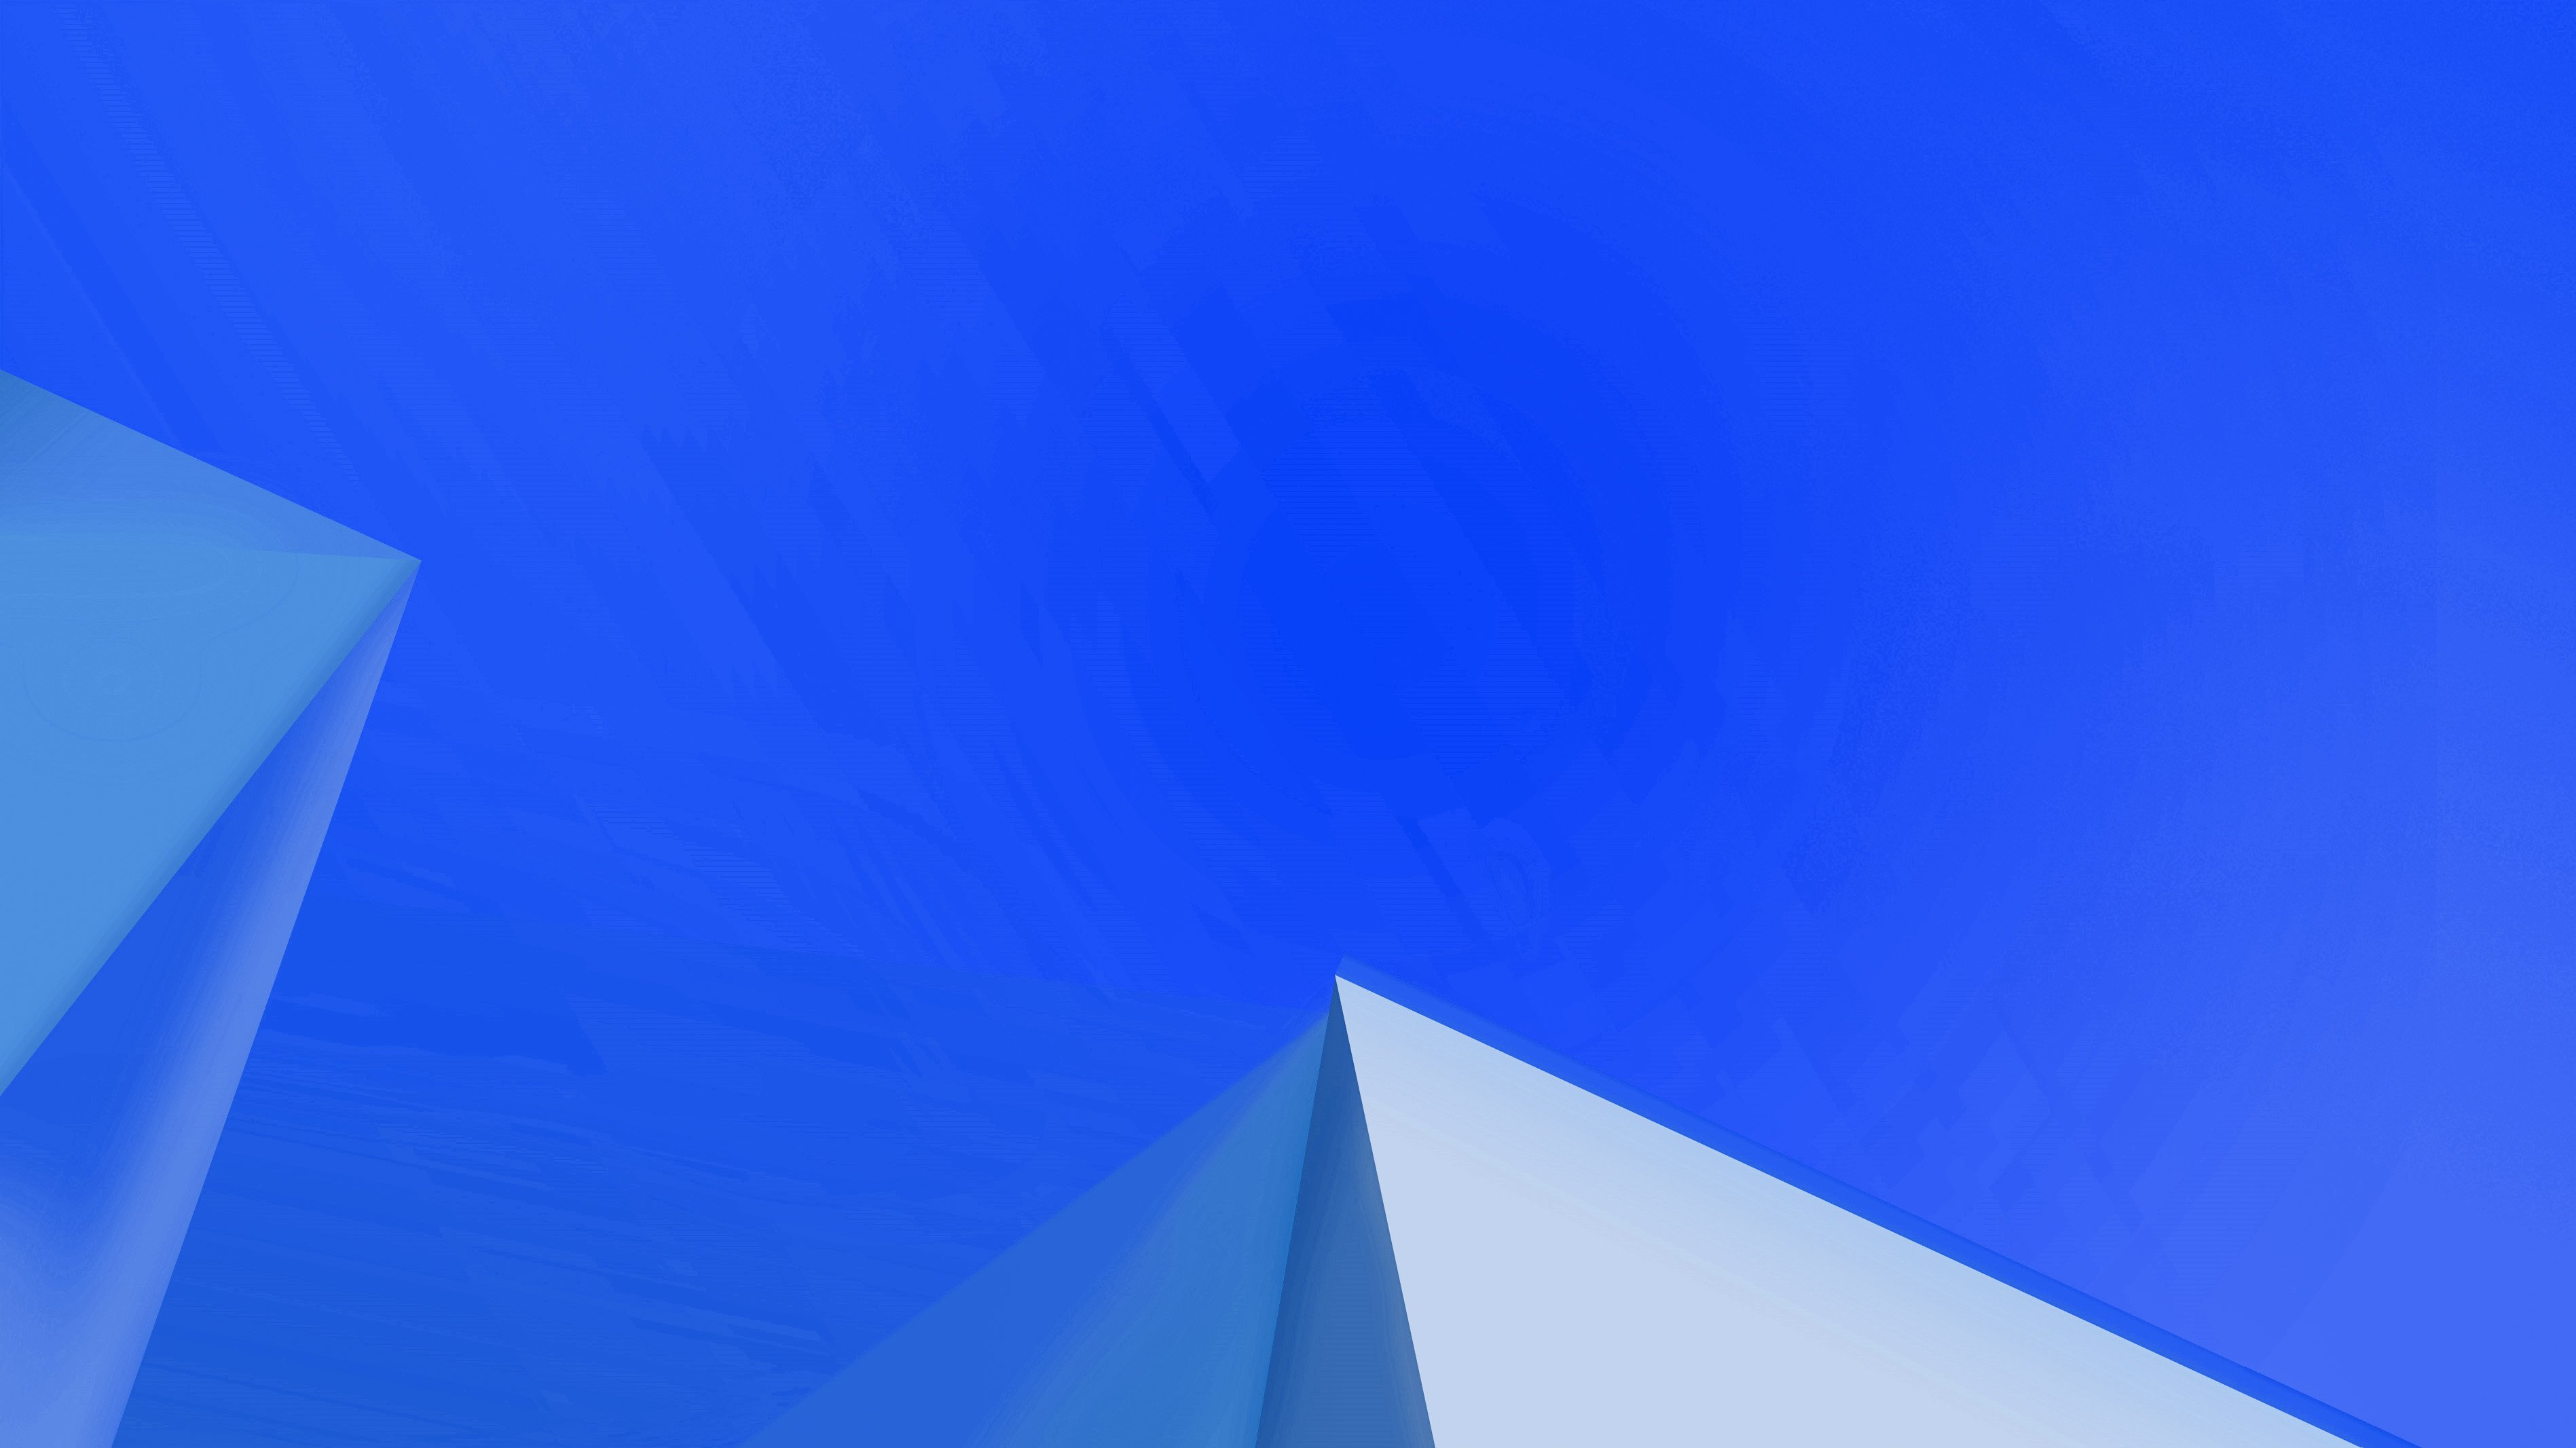 Windows 8.1 Official Wallpaper - WallpaperSafari